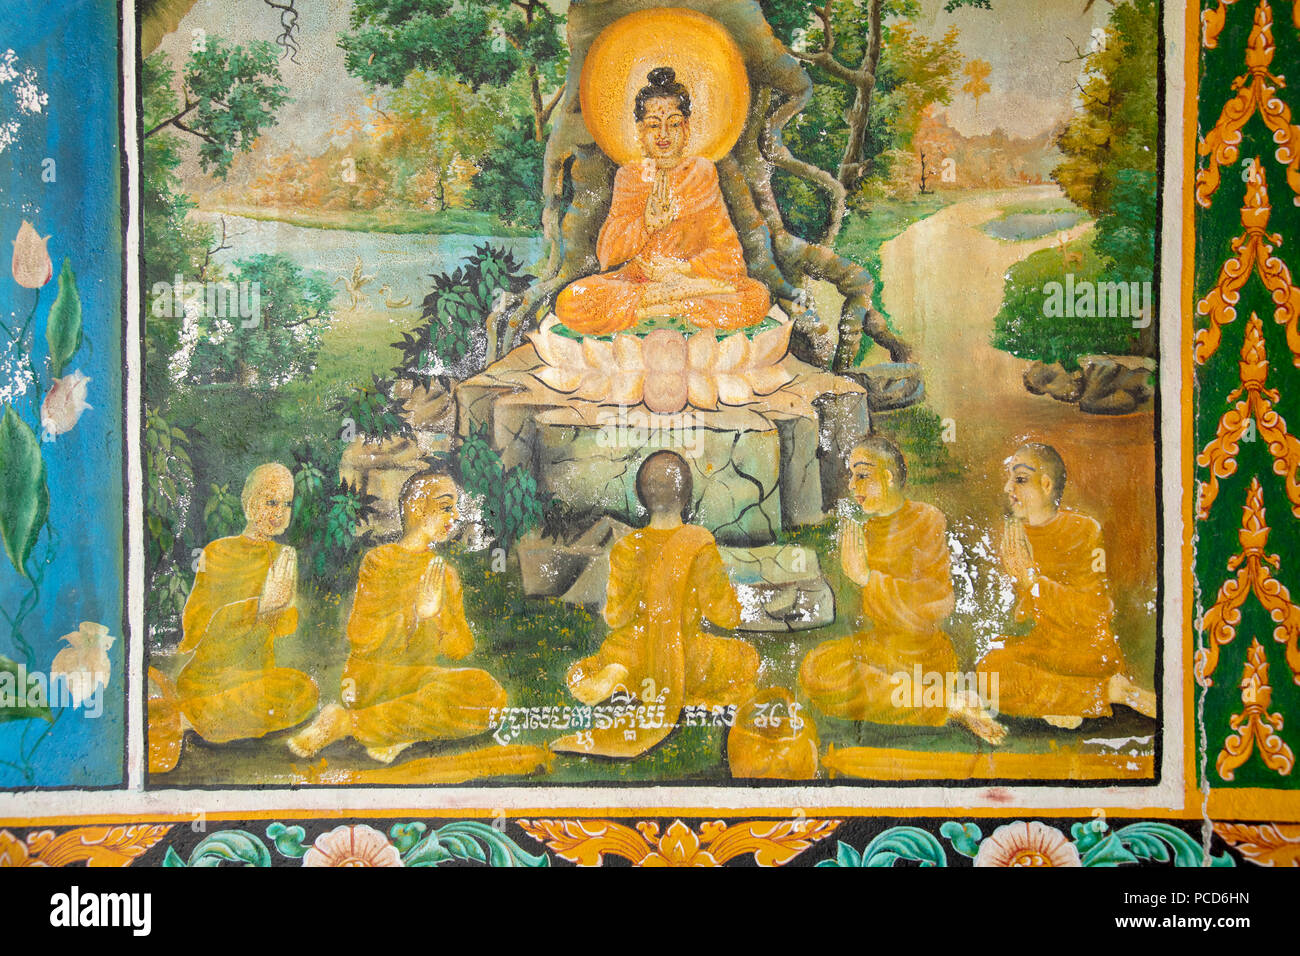 Mural showing scenes from the life of the Buddha, Takeo, Cambodia, Indochina, Southeast Asia, Asia - Stock Image